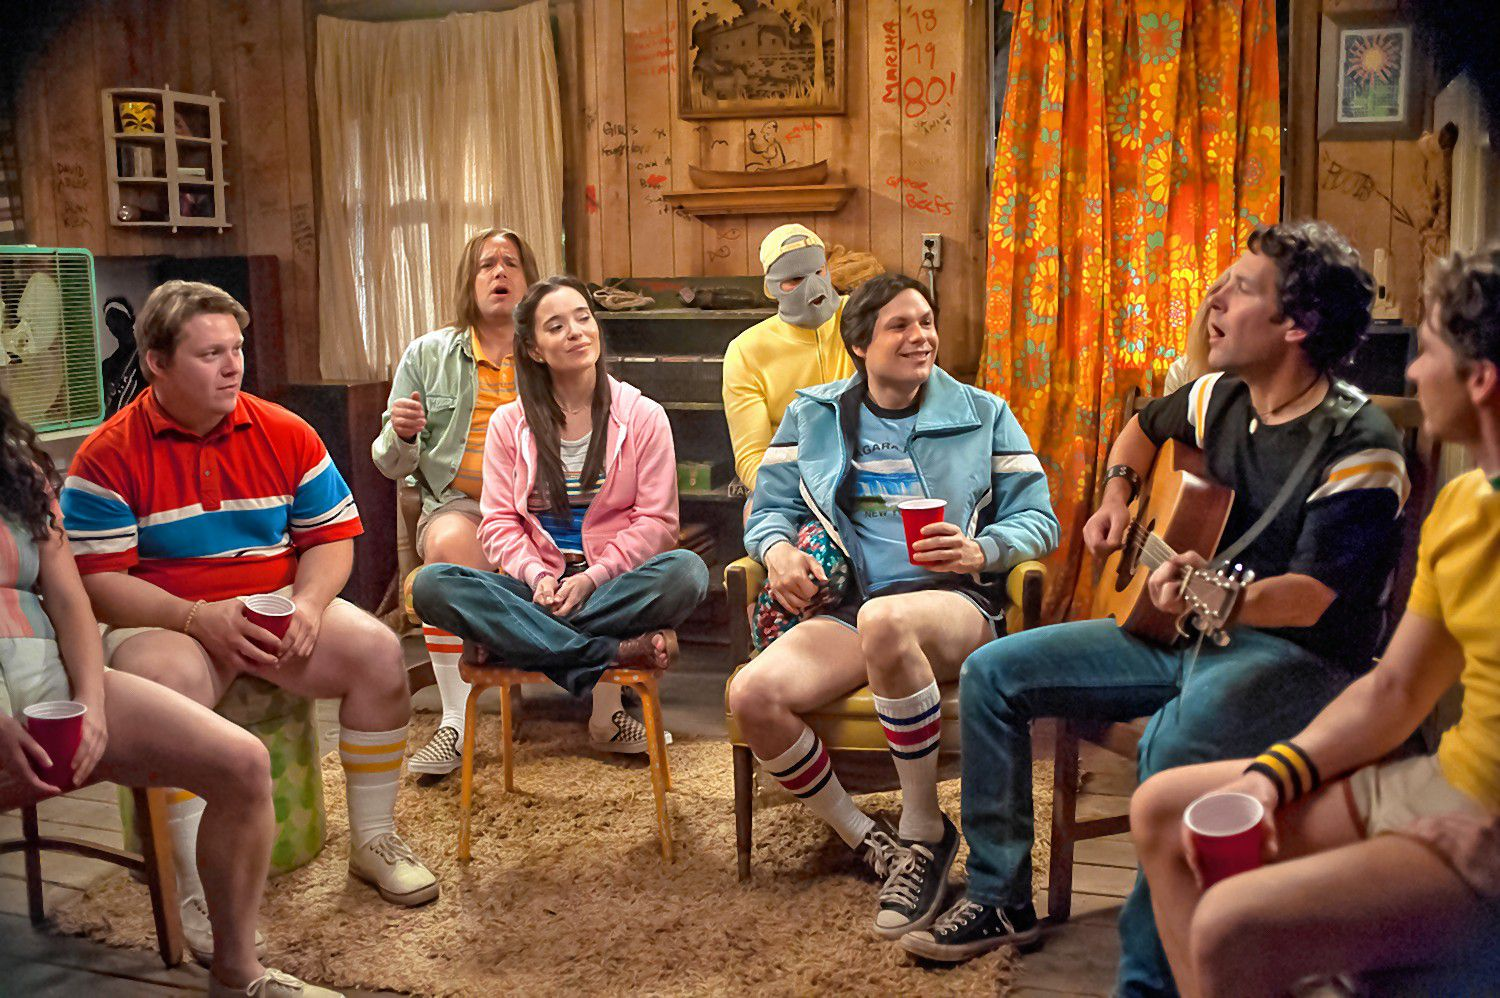 Blaise's Bad Movie Guide: The First Wet, Hot American Summer was so bad, how did it get a sequel?